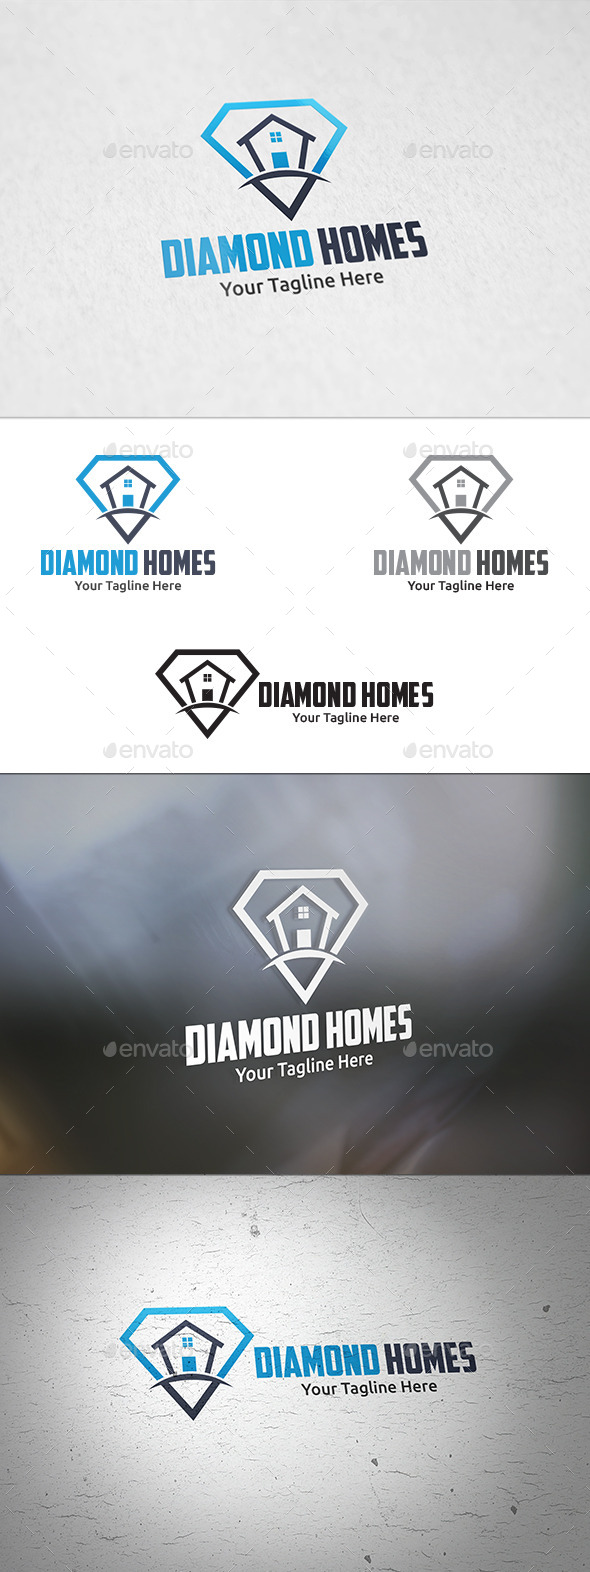 GraphicRiver Diamond Homes Logo Template 11426717